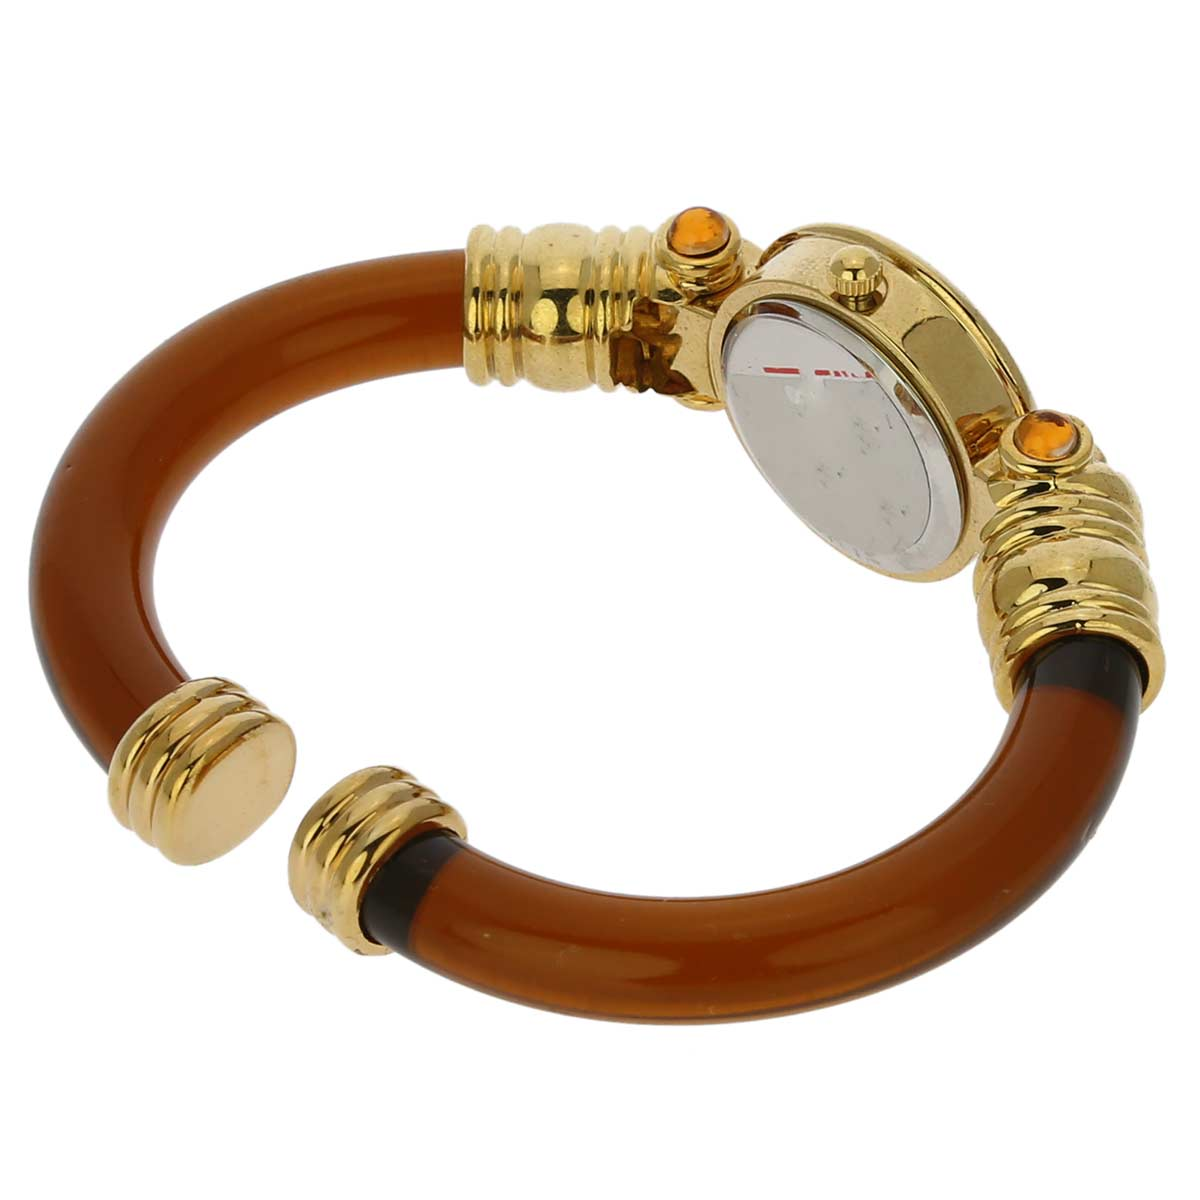 Murano Millefiori Bangle Watch - Golden Brown